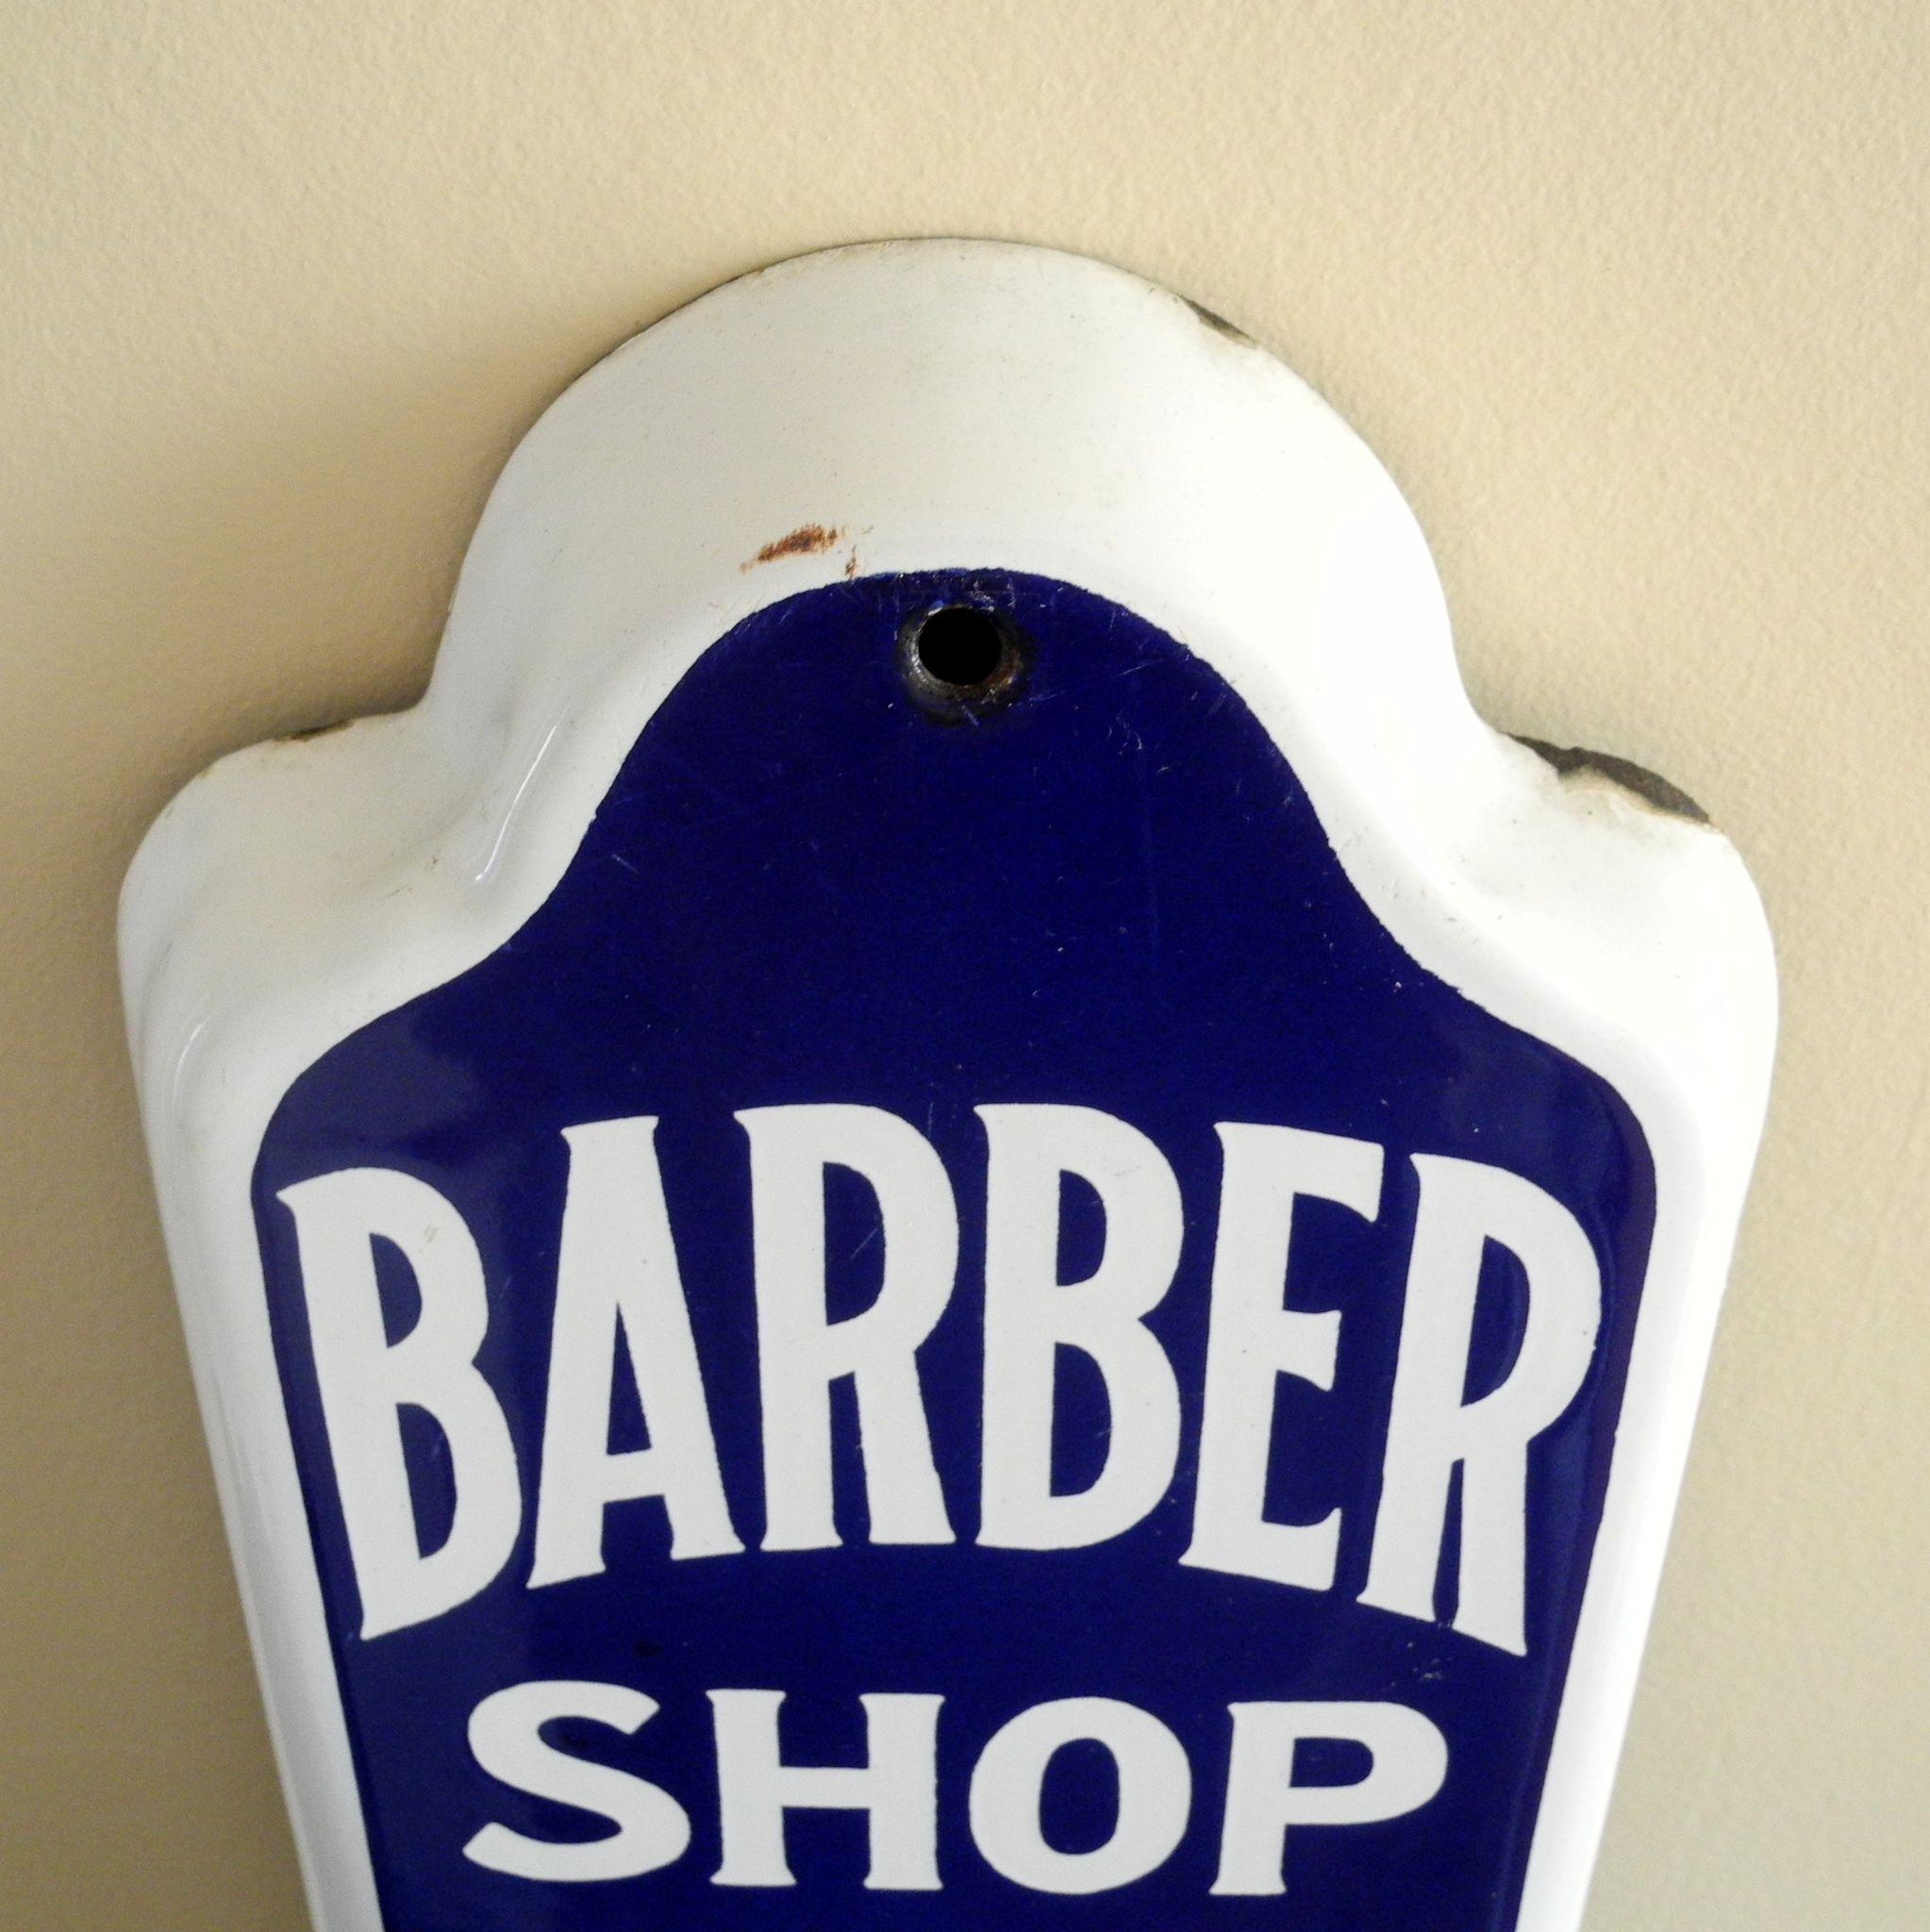 Antique barber shop sign - Roll Over Large Image To Magnify Click Large Image To Zoom